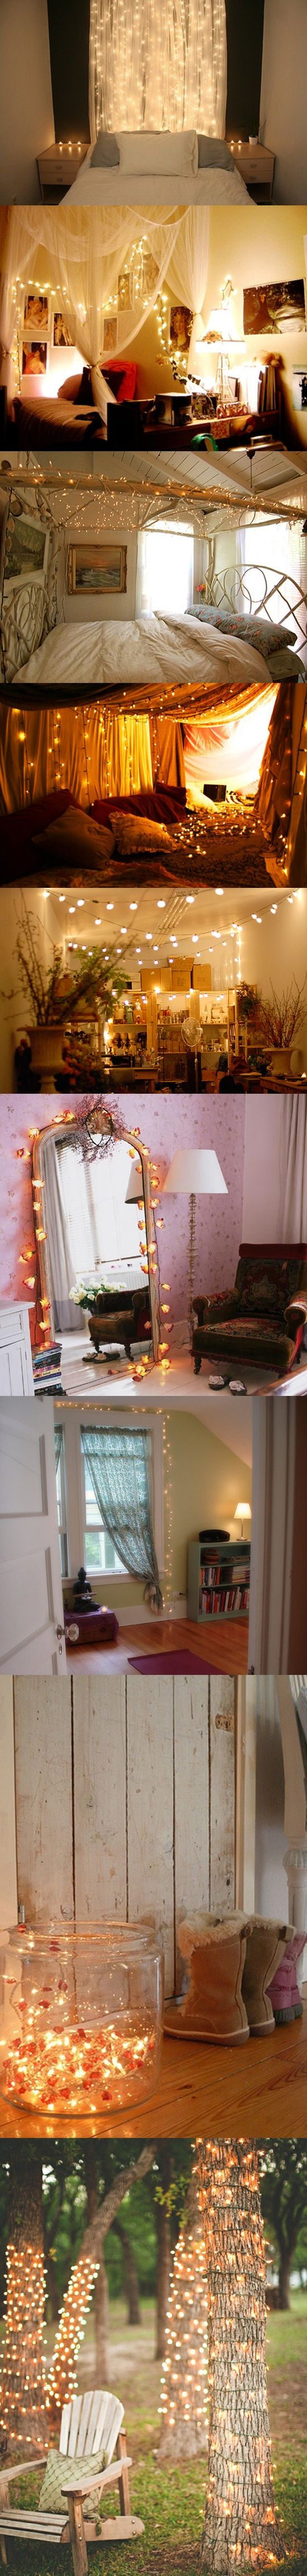 Fairy Lights Decorating Ideas @ DIY Home Design - lots of ideas for using string lights to create atmosphere